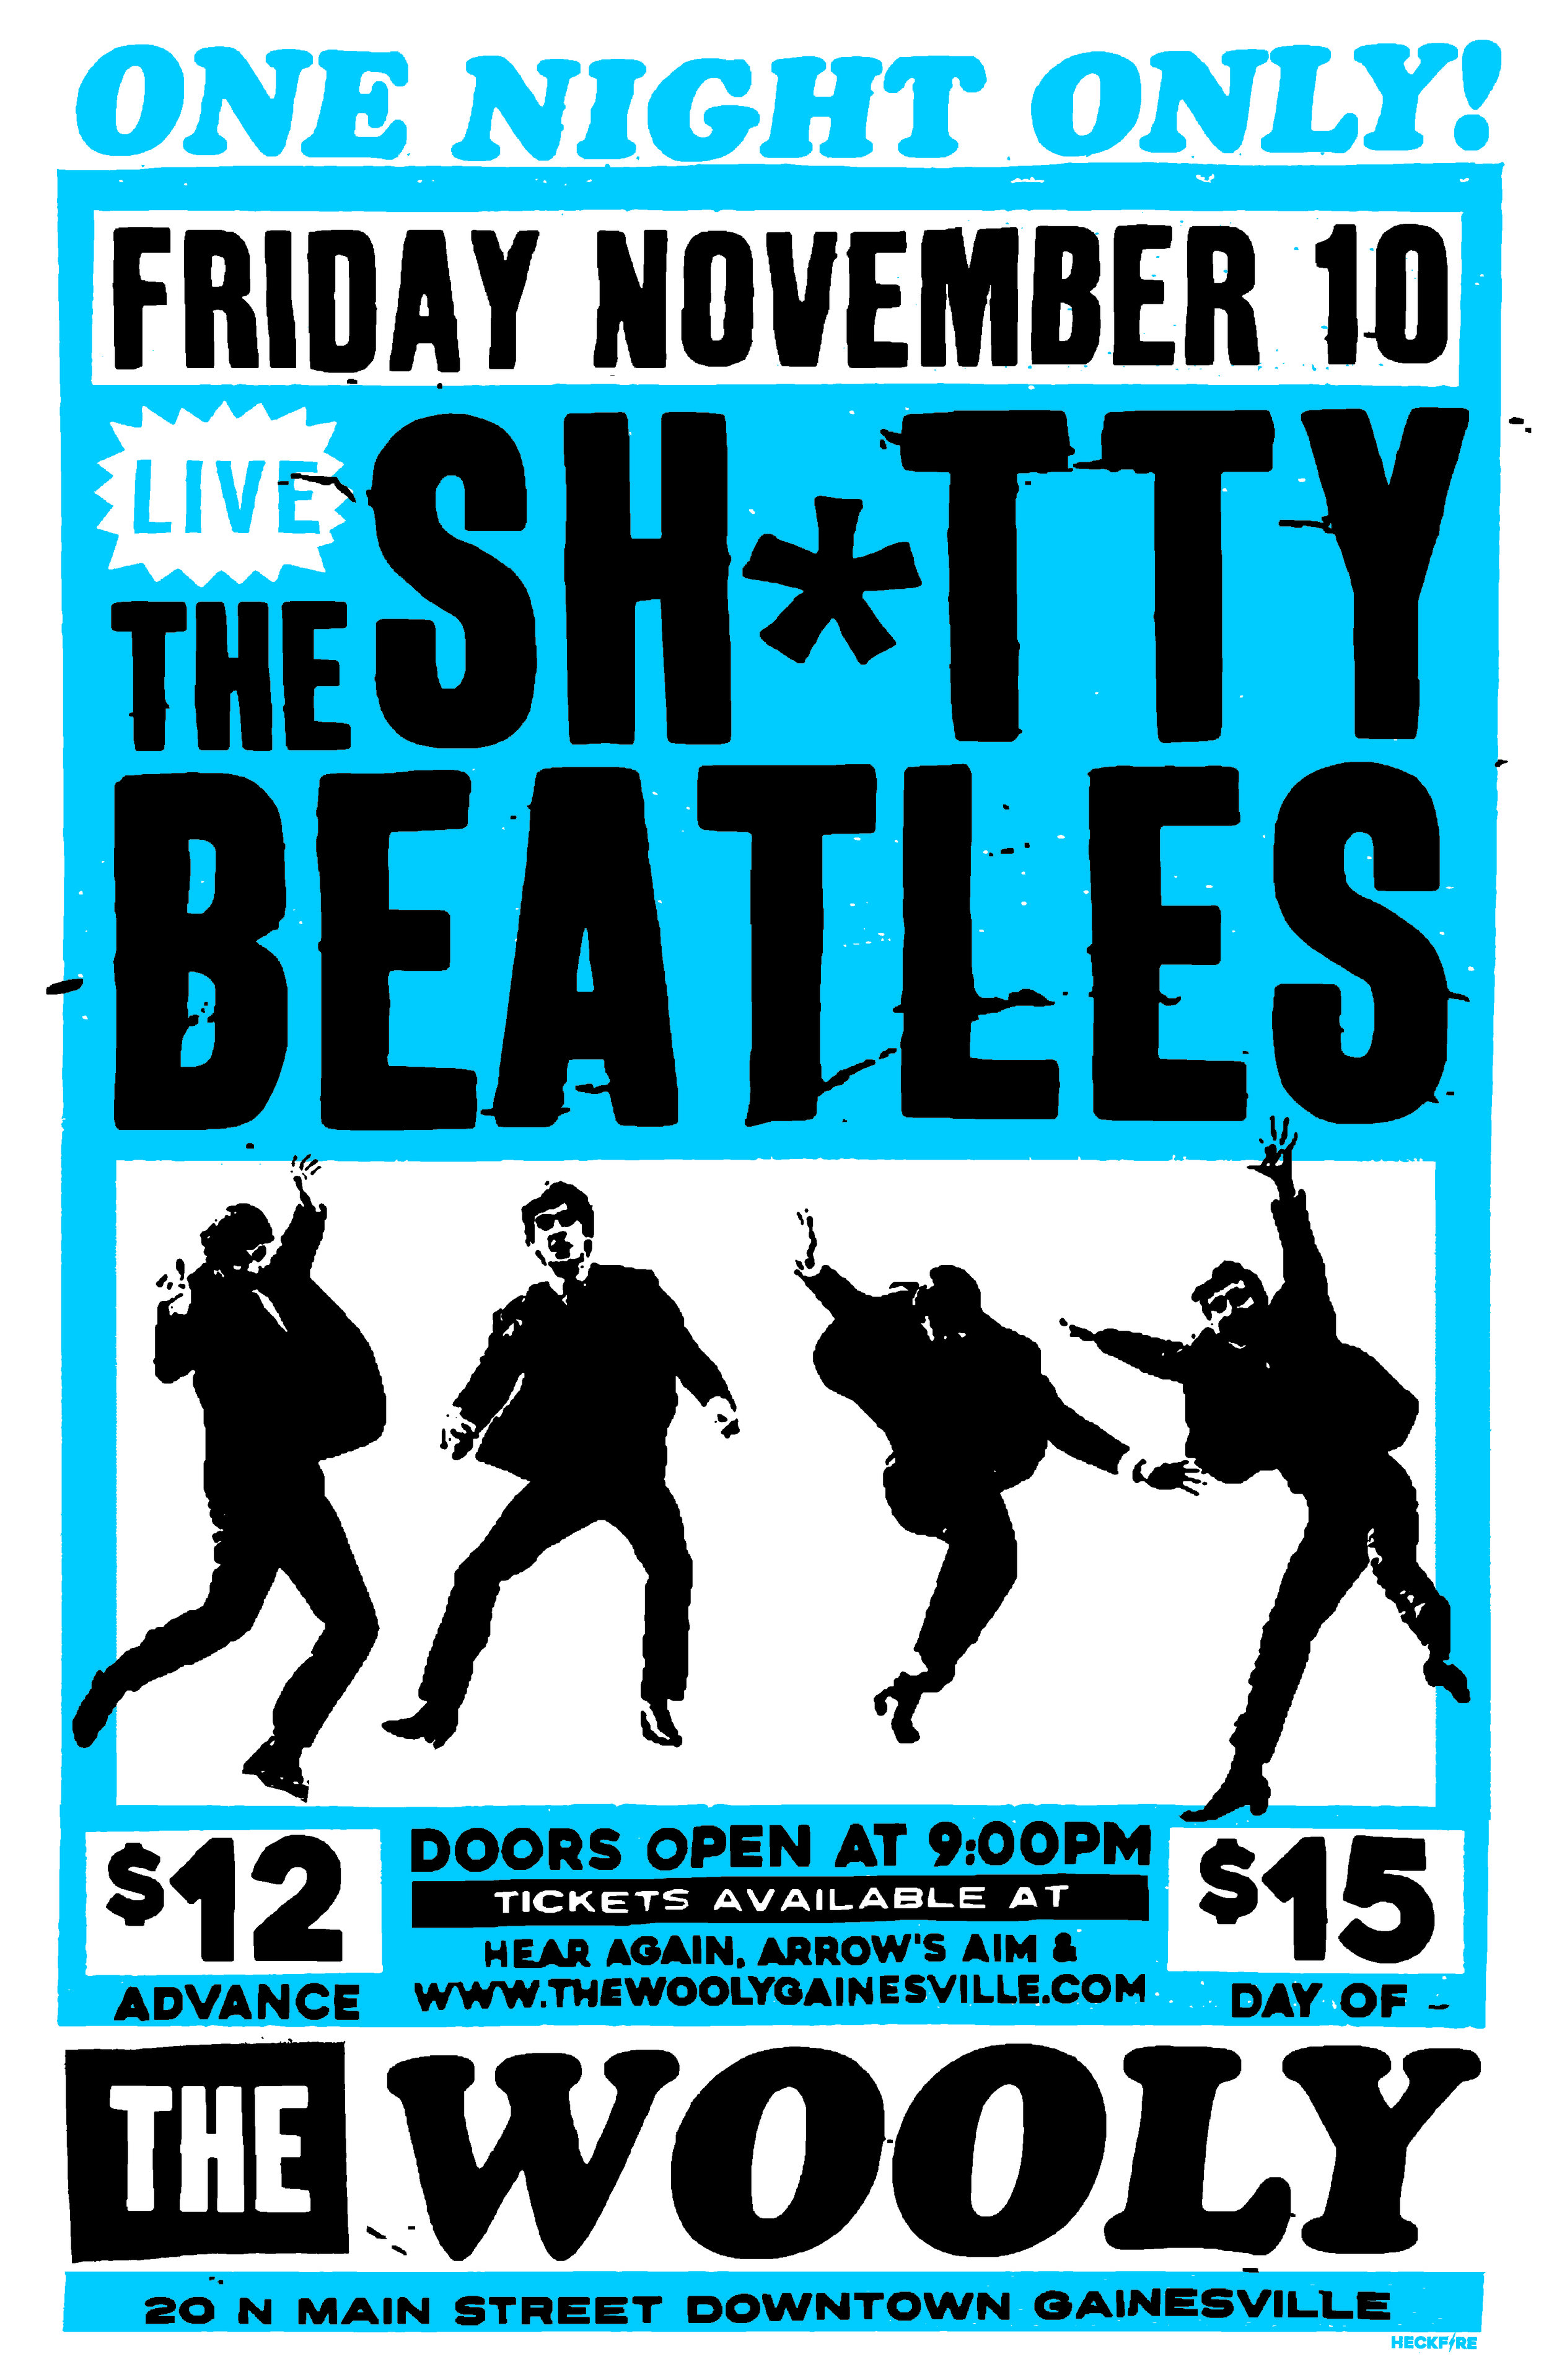 Details  Friday November 10th   The Shitty Beatles  - One Night Only!  at The Wooly 20 North Main Street Downtown Gainesville Doors at 9pm $12 advance / $15 at the door   Buy Tickets  Physical tickets will also be available at  Arrow's Aim Records  &  Hear Again Records